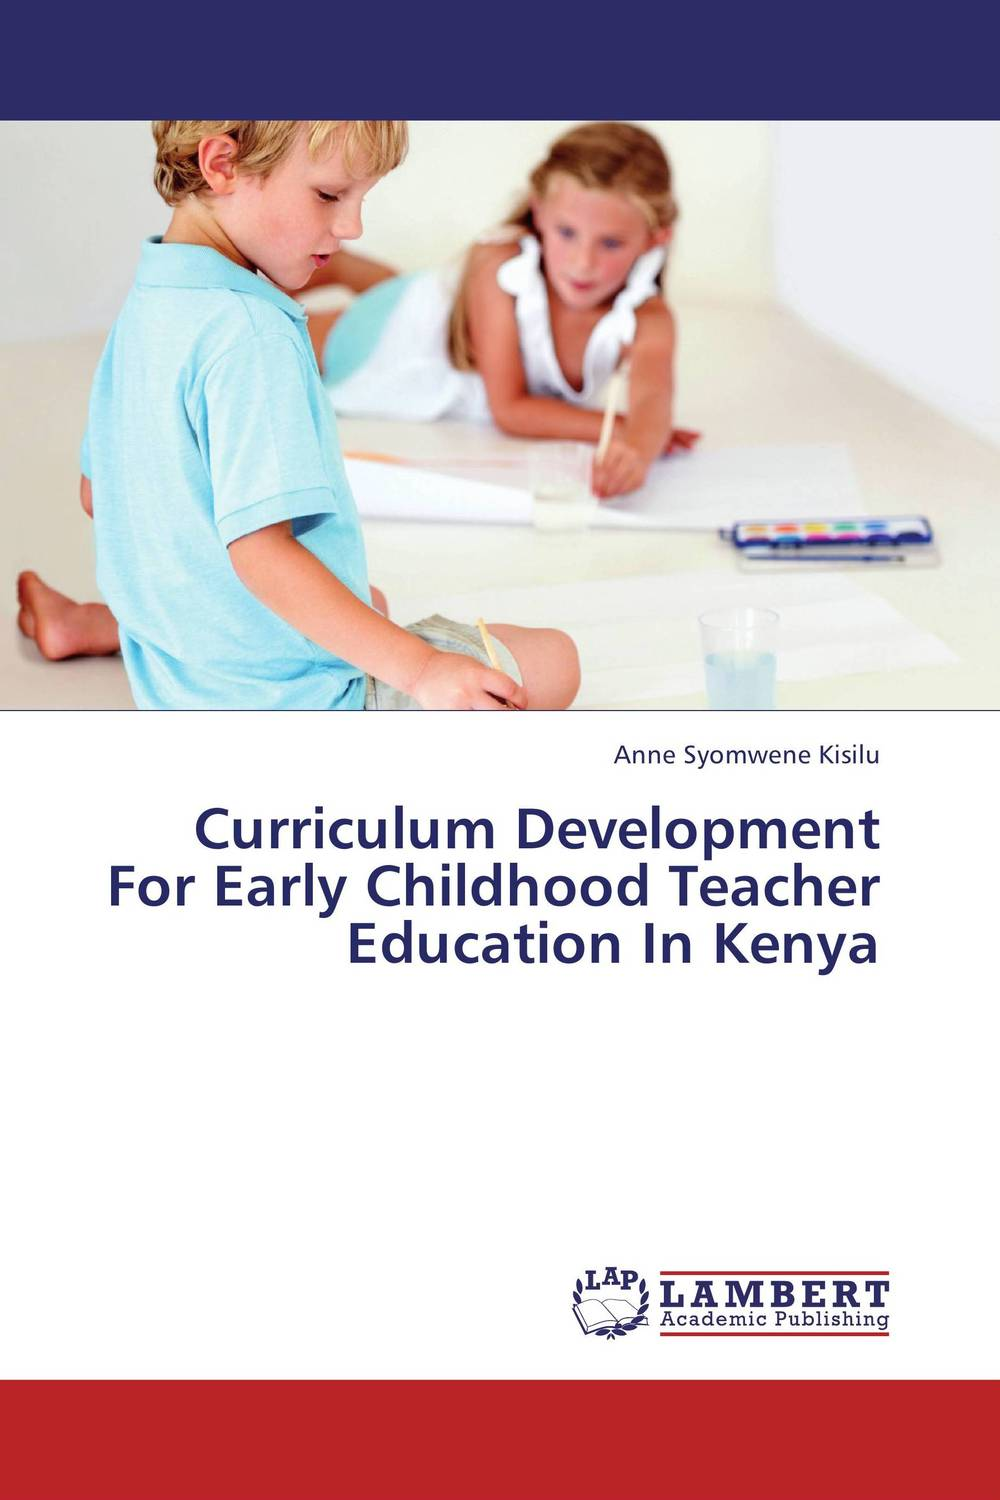 Curriculum Development For Early Childhood Teacher Education In Kenya teacher education in kenya